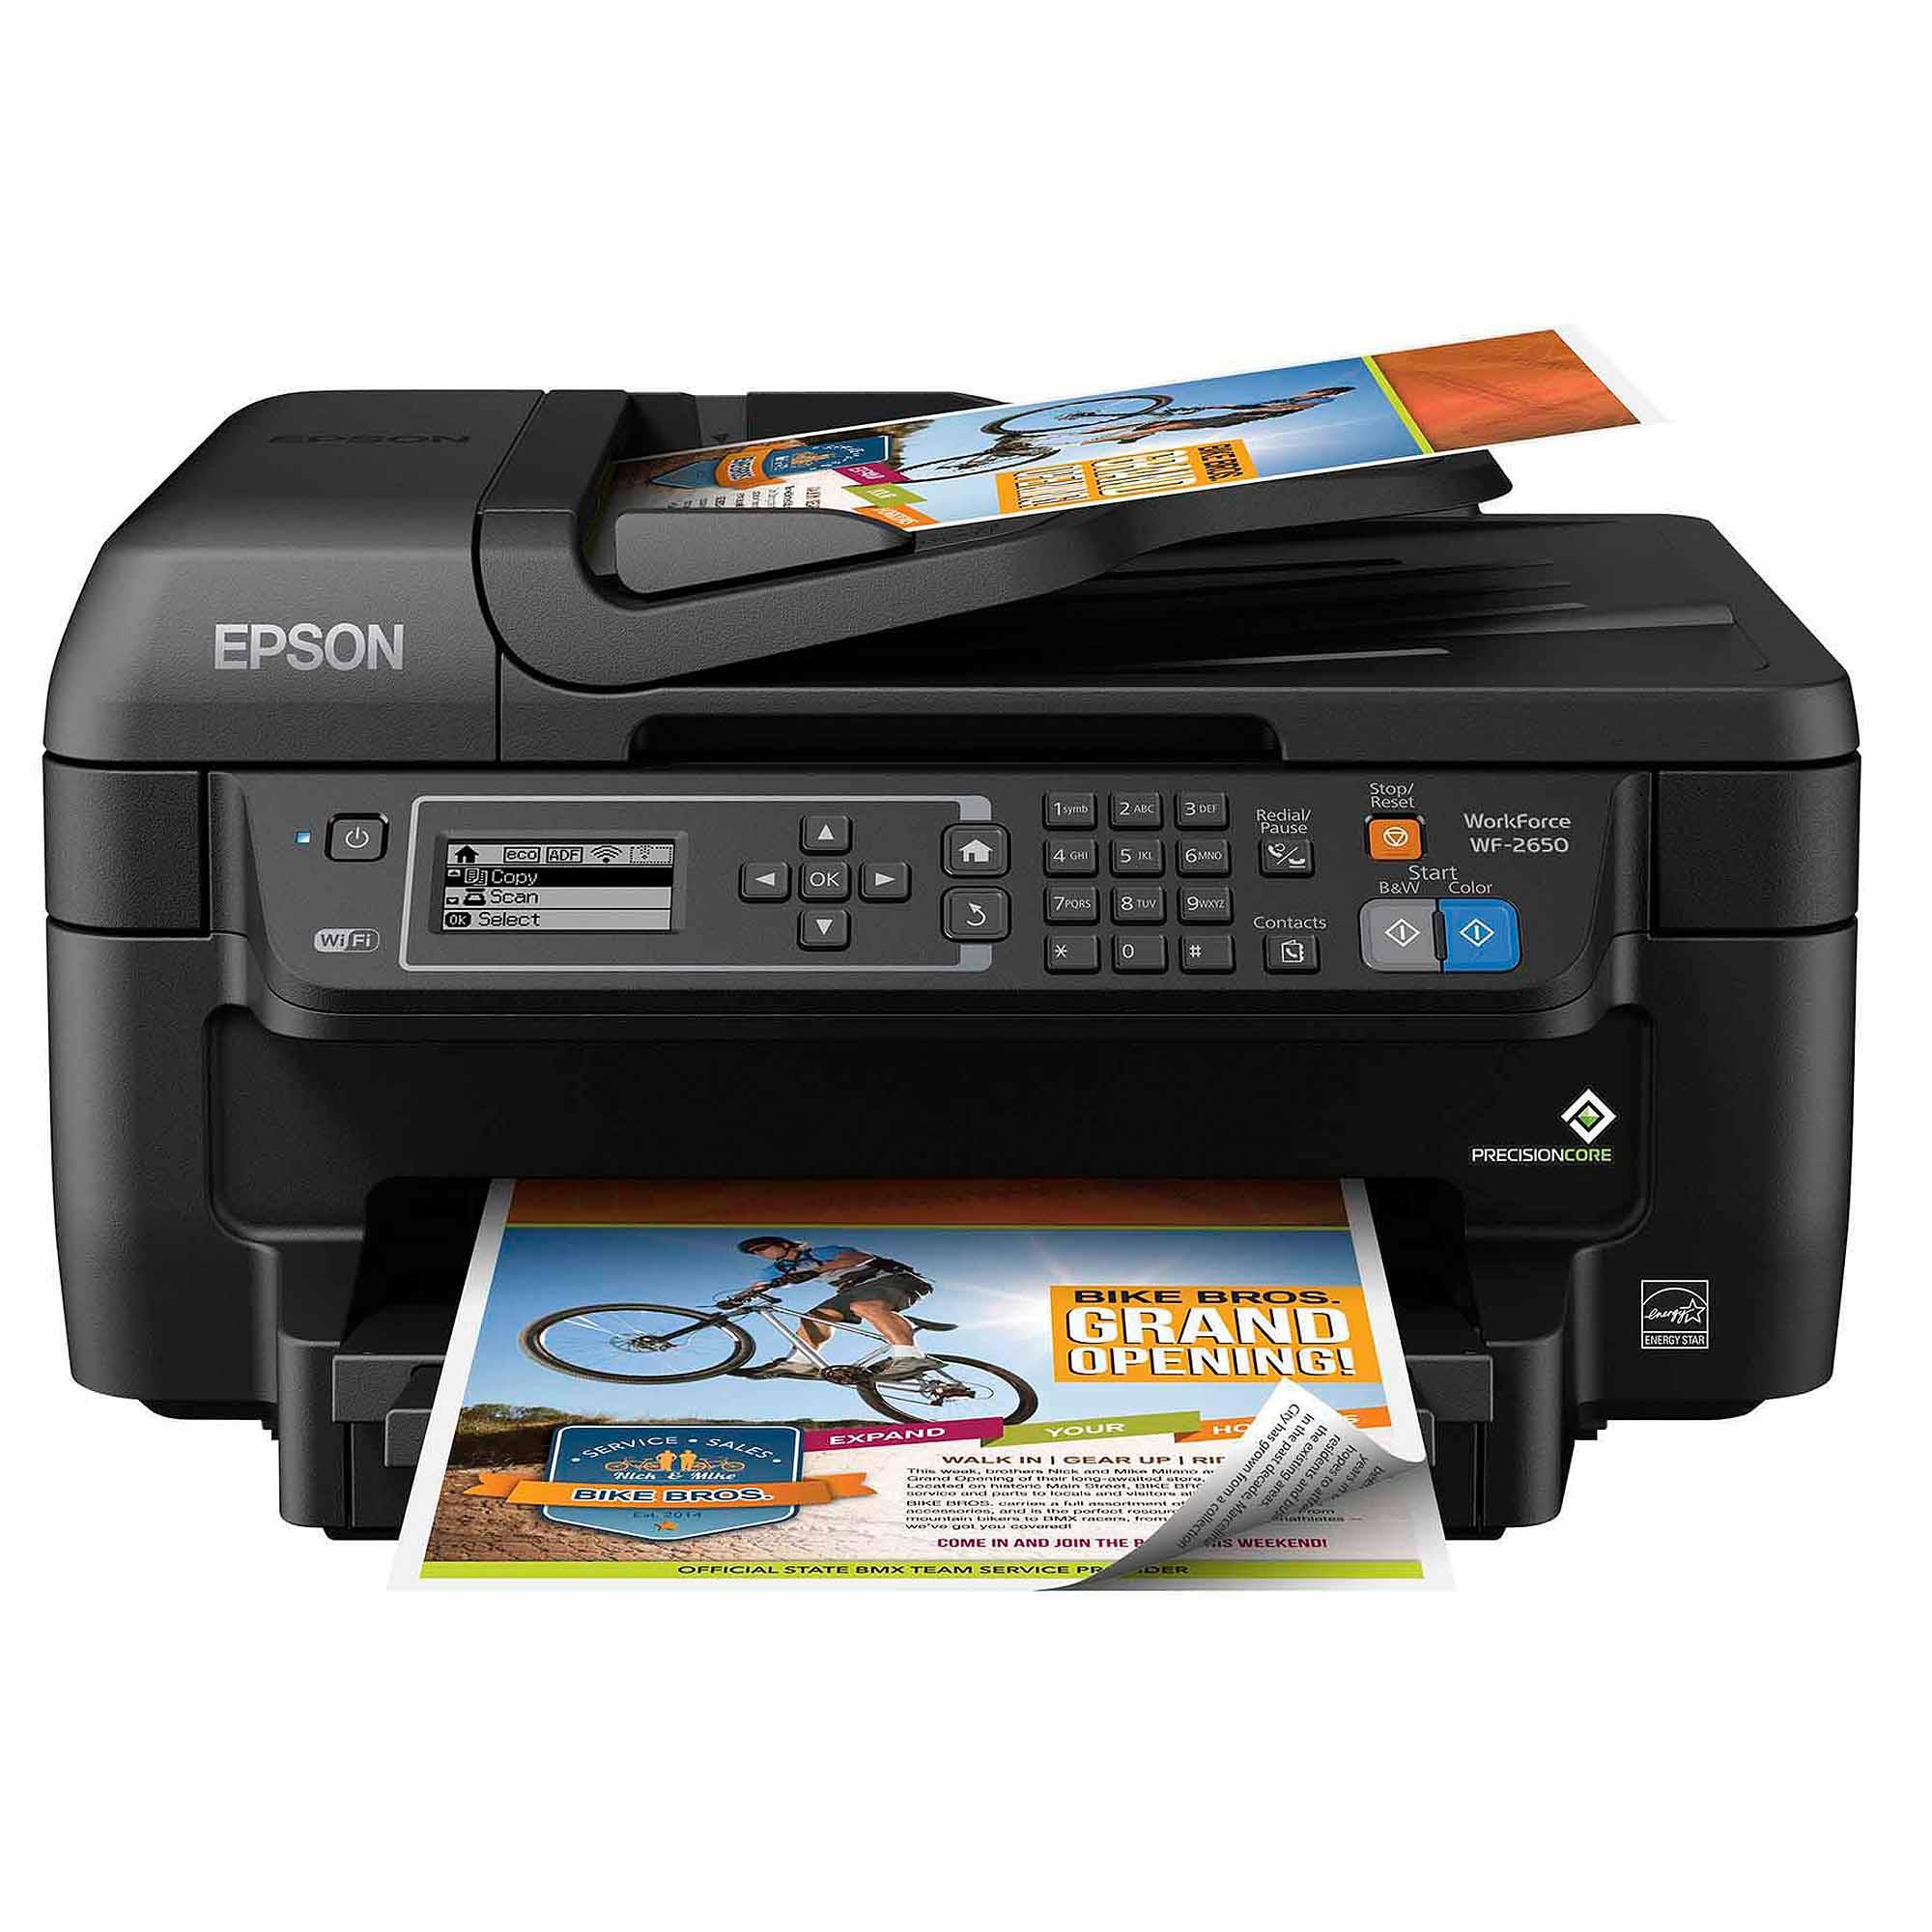 Epson WorkForce WF-2650 All-in-One Printer AirPrint Google